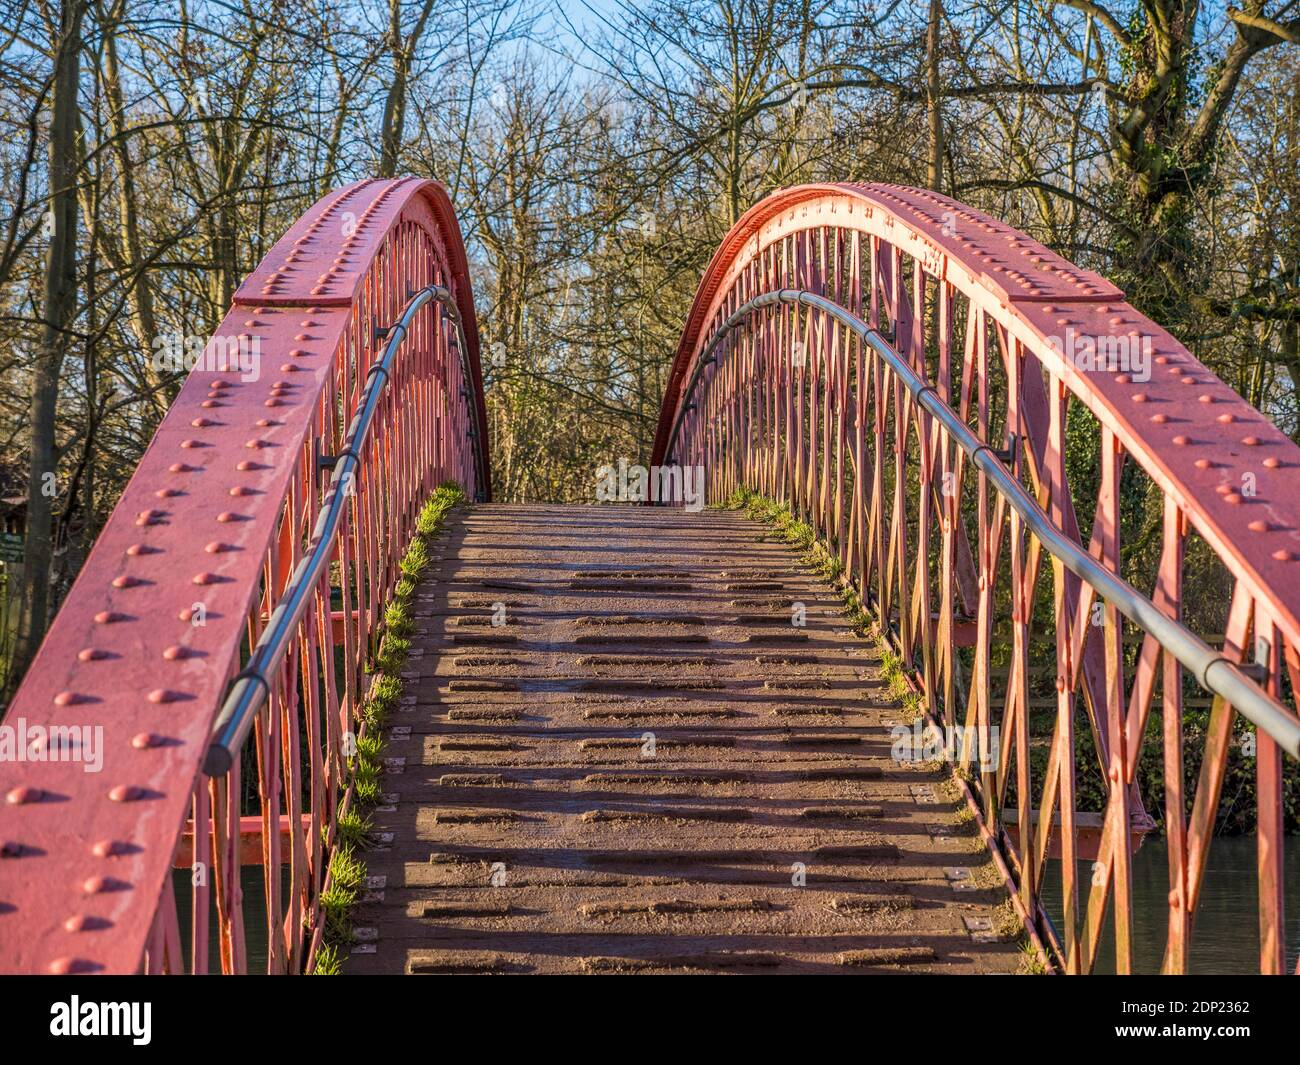 Red Footbridge, Port Meadow, River Thames, Thames Path, Oxford, Oxfordshire, England, UK, GB. Stock Photo